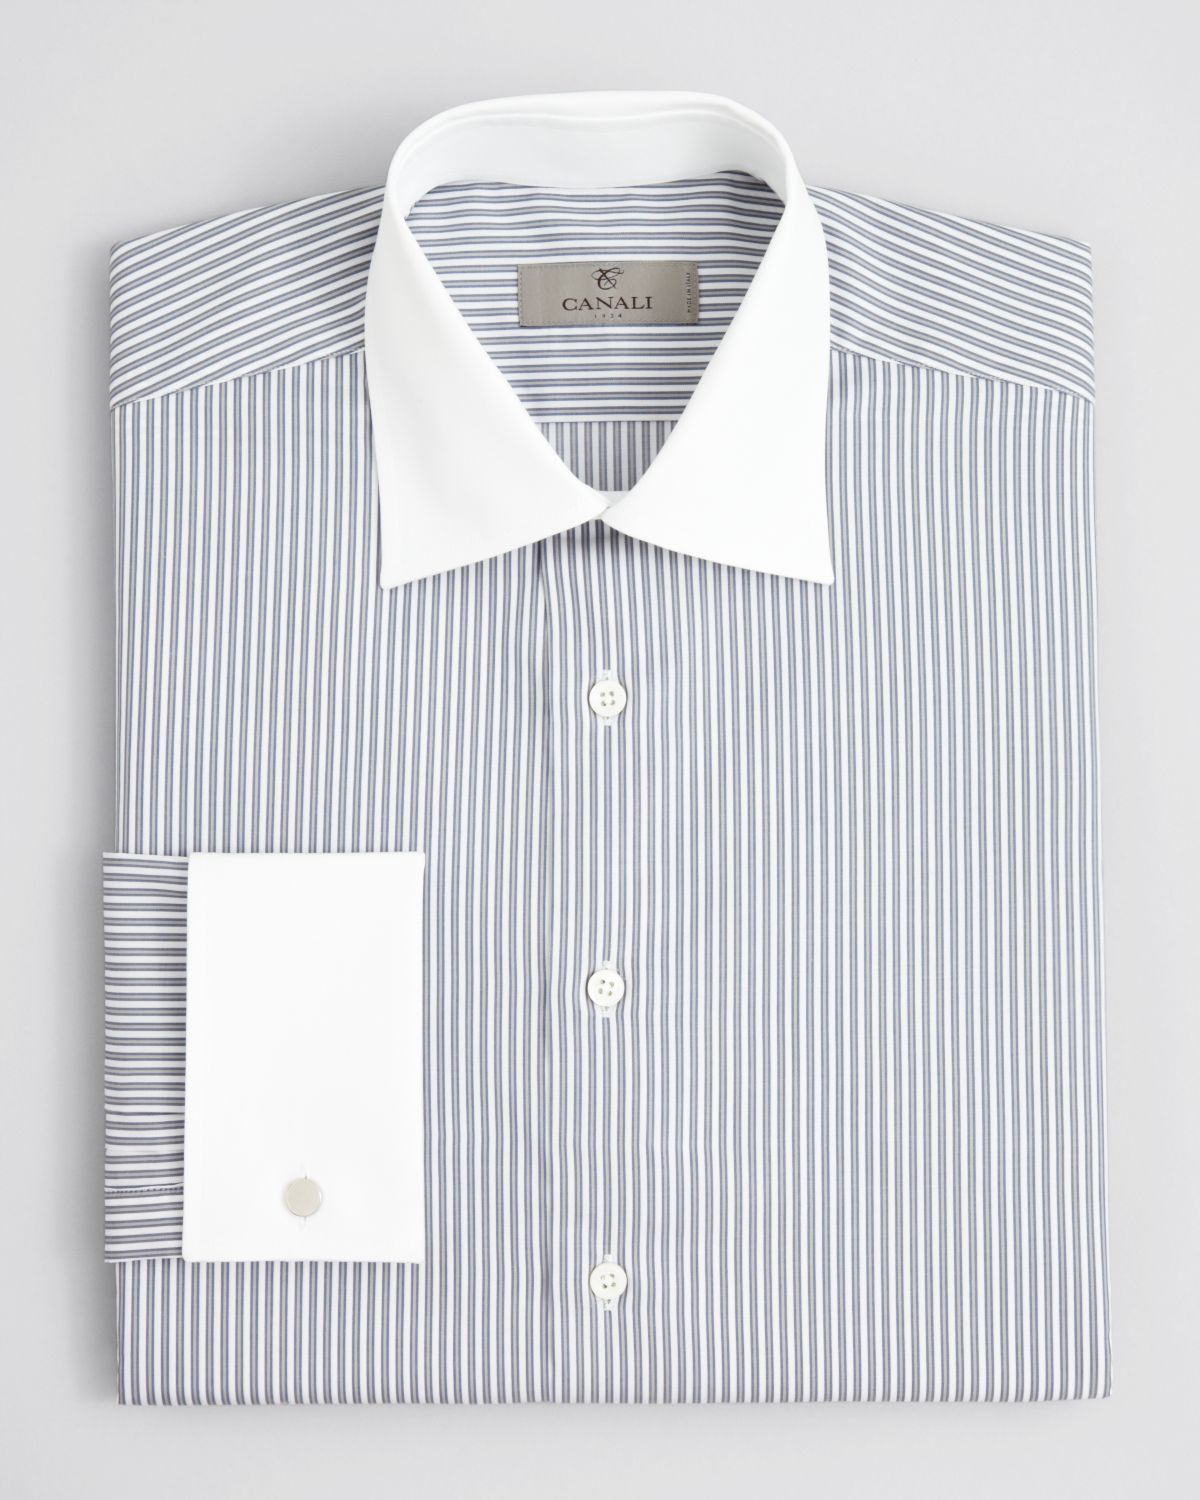 Canali Outline Stripe White Collar Dress Shirt Regular Fit